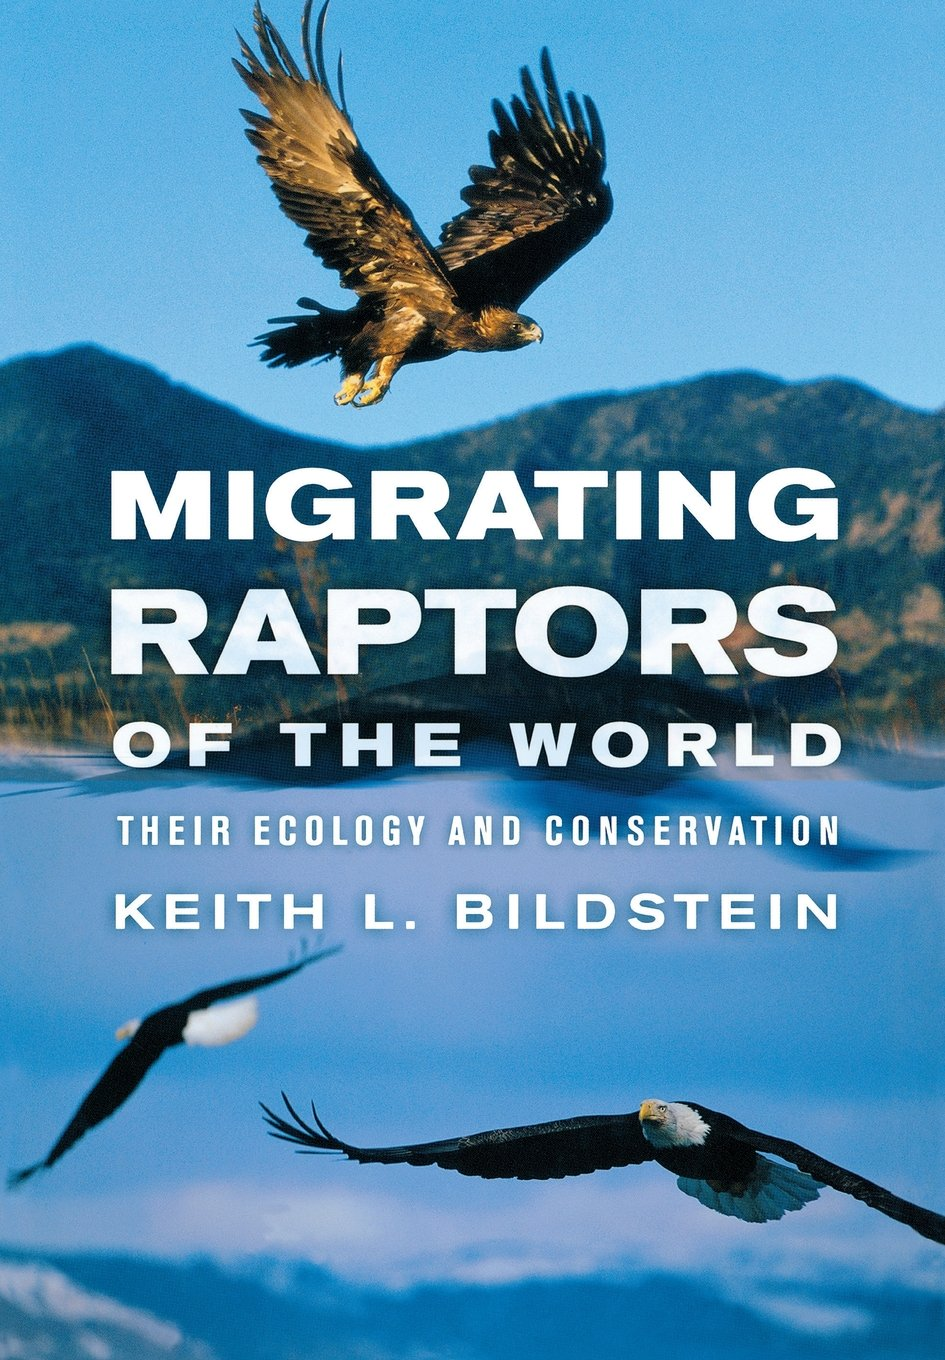 Migrating Raptors of the World: Their Ecology and Conservation PDF